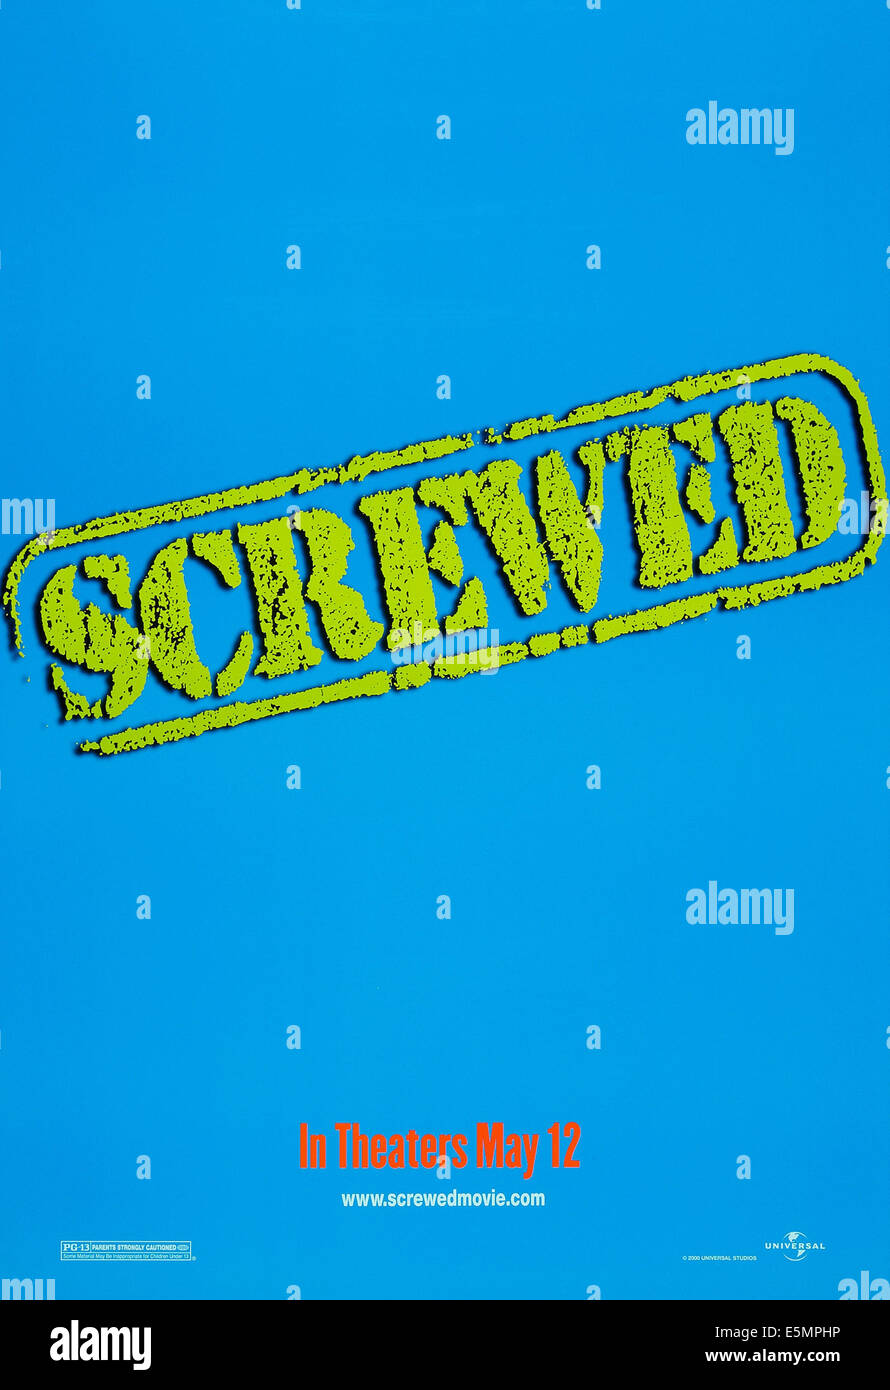 SCREWED, US advance poster art, 2000. ©Universal/courtesy Everett Collection - Stock Image